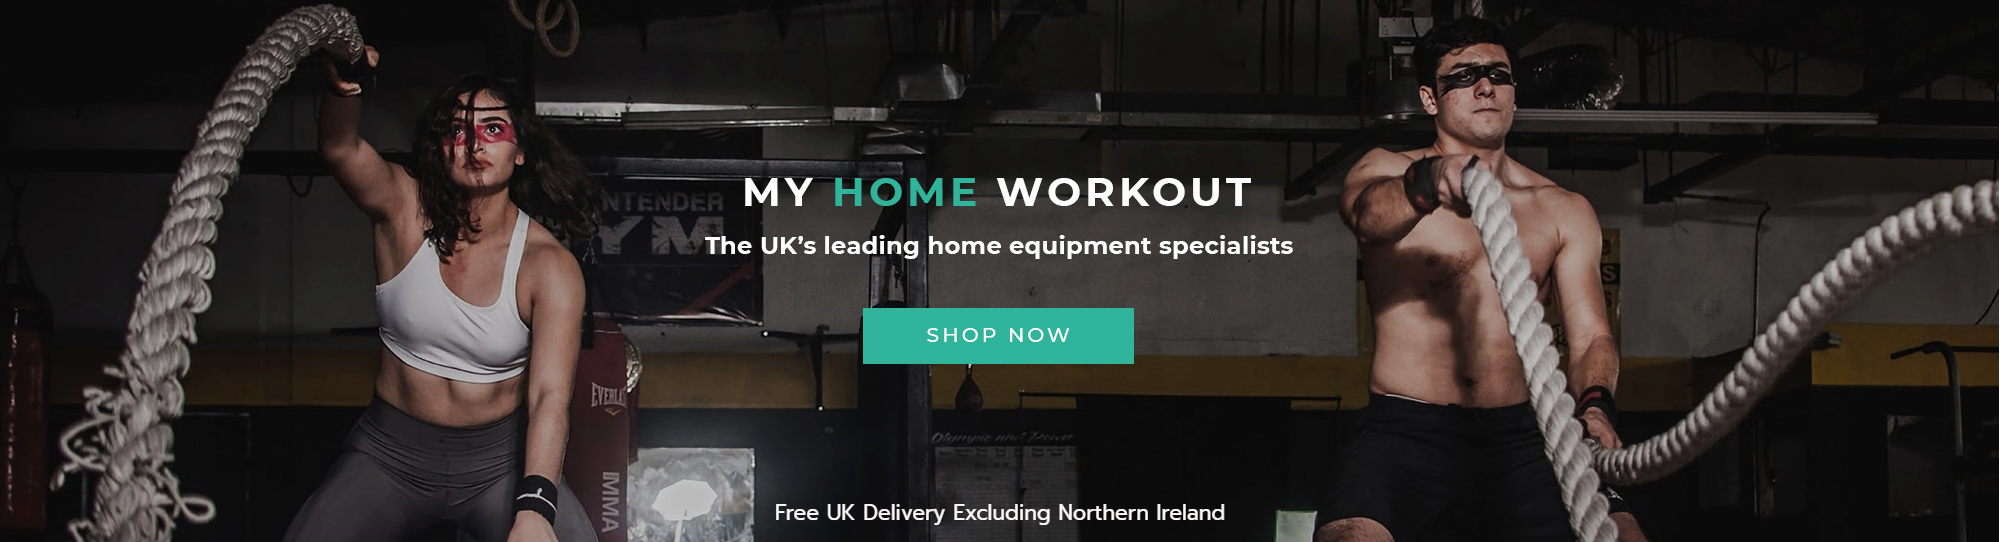 My Home Workout - the UK's home equipment specialist